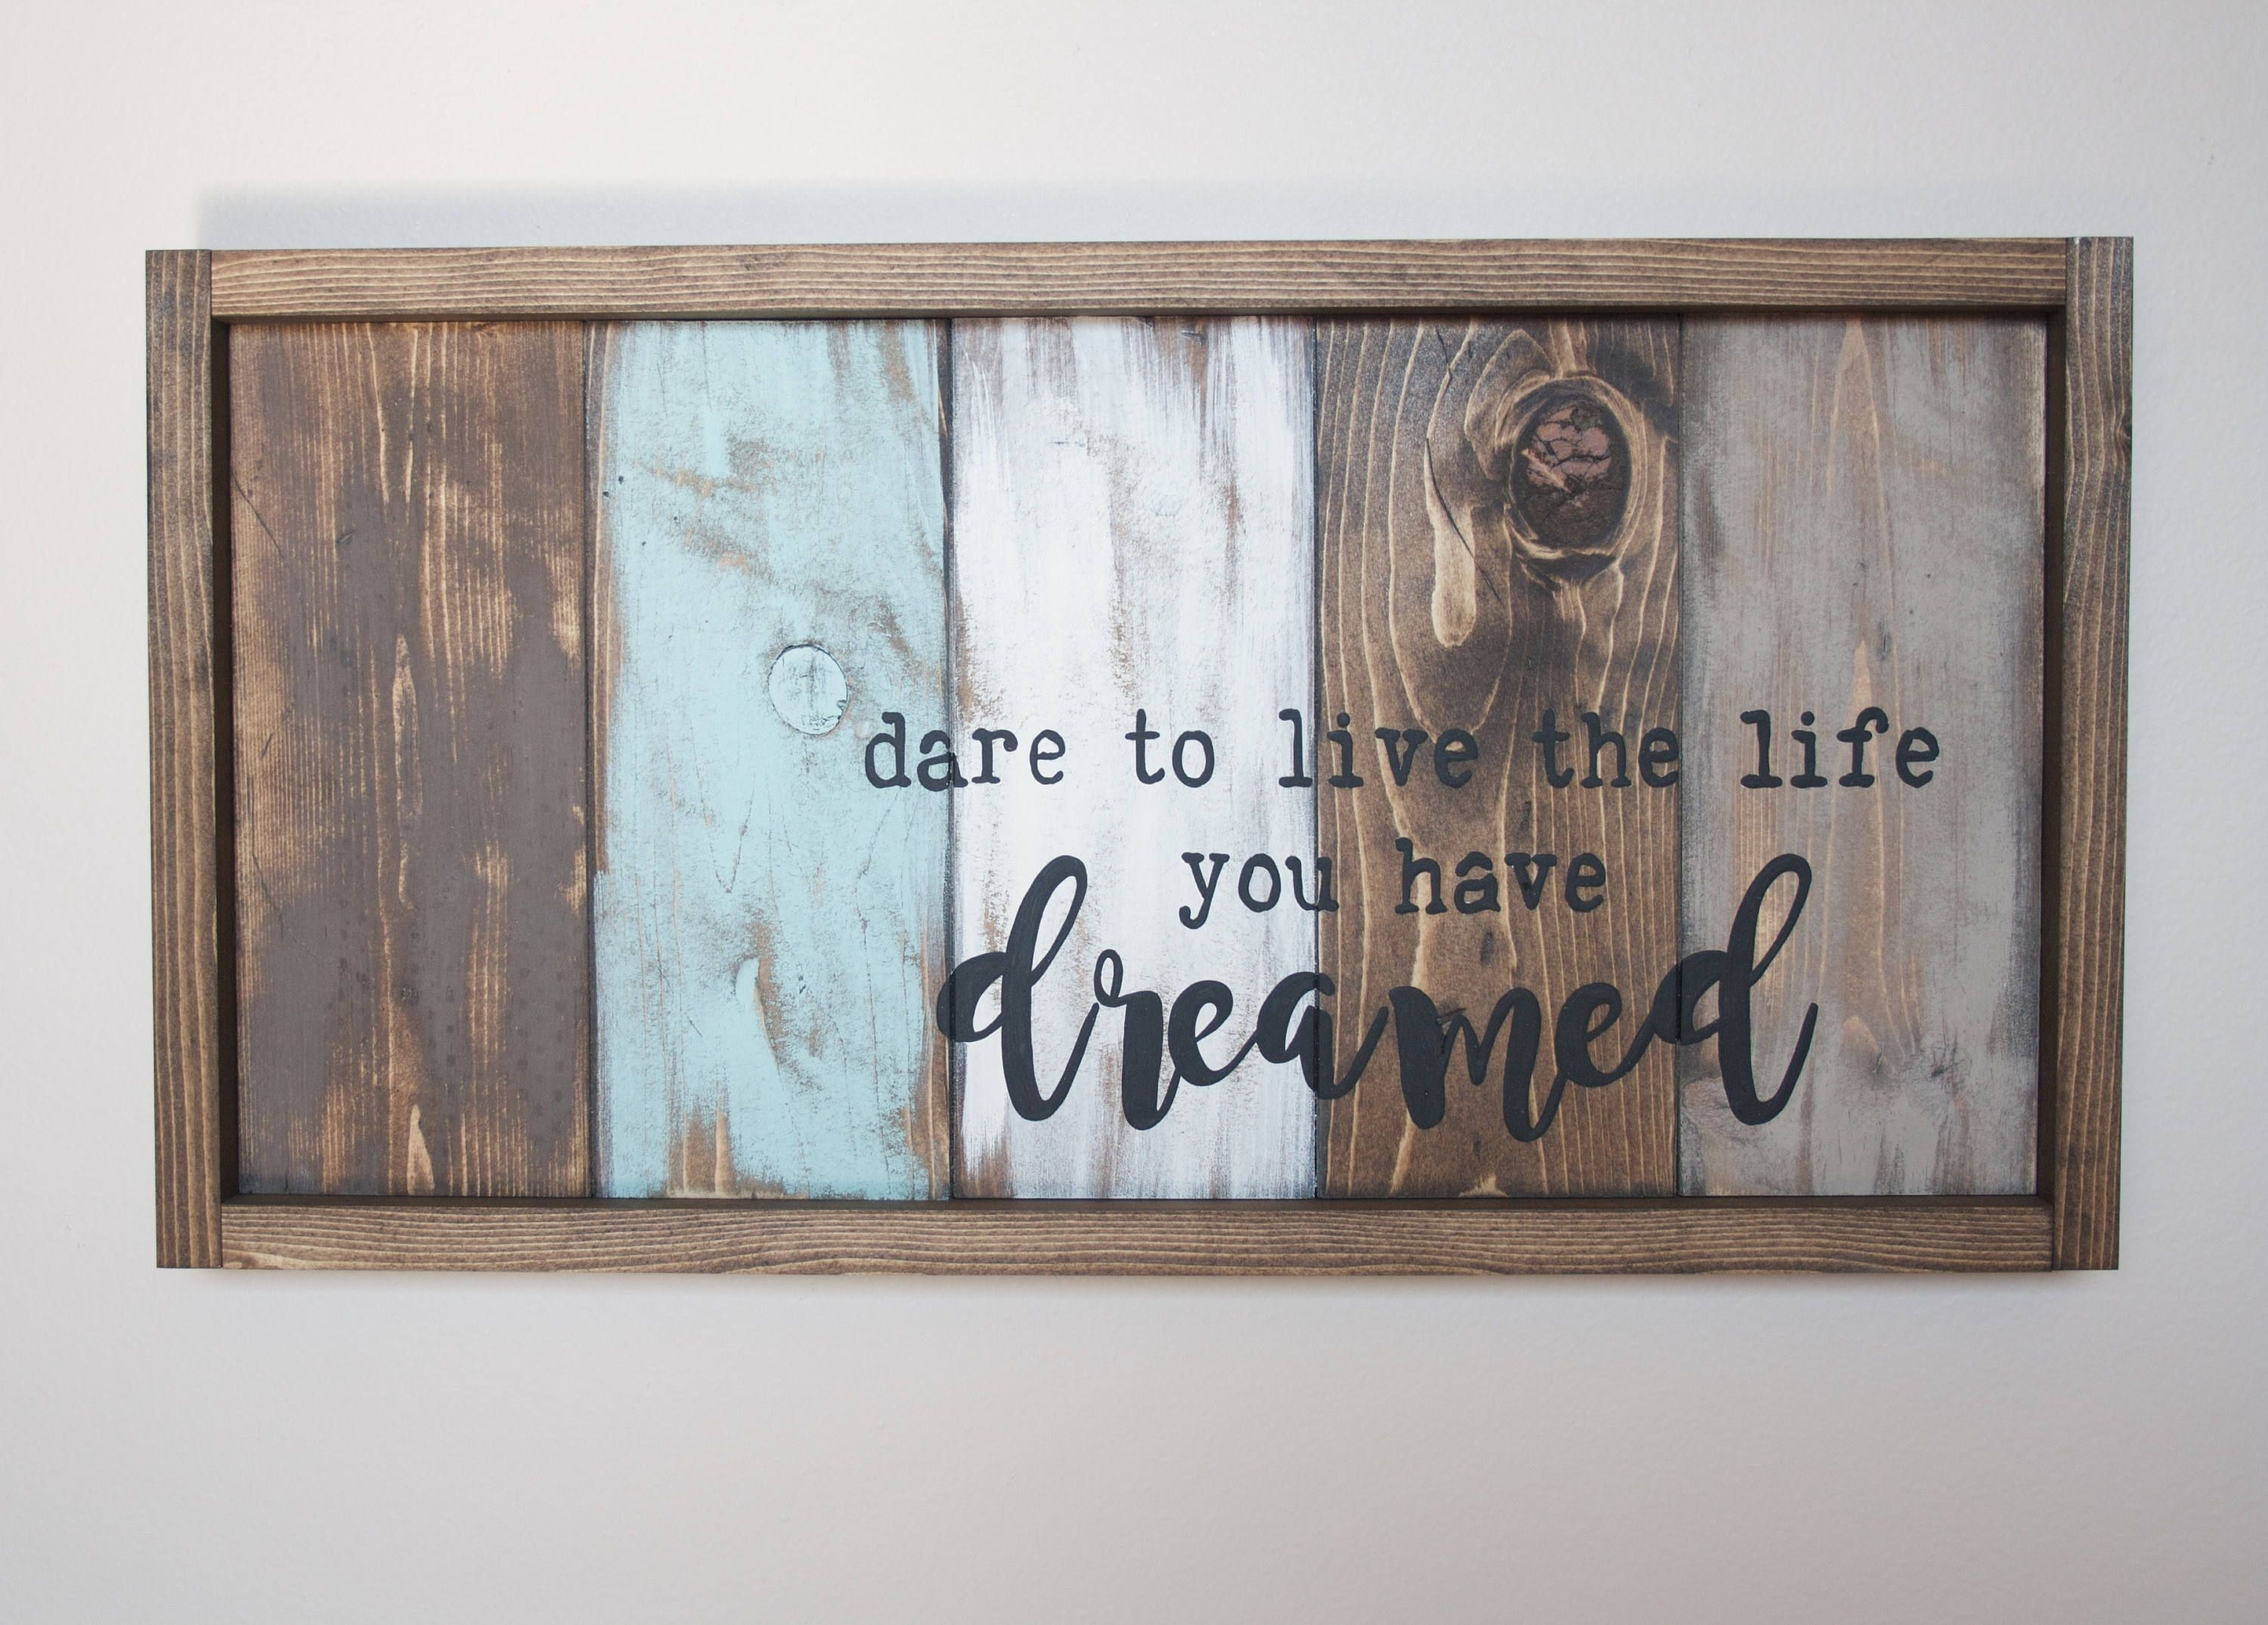 Motivational Wall Decor – Live The Life You Love – Pallet Wall Art With Regard To Most Current Pallet Wall Art (View 5 of 15)